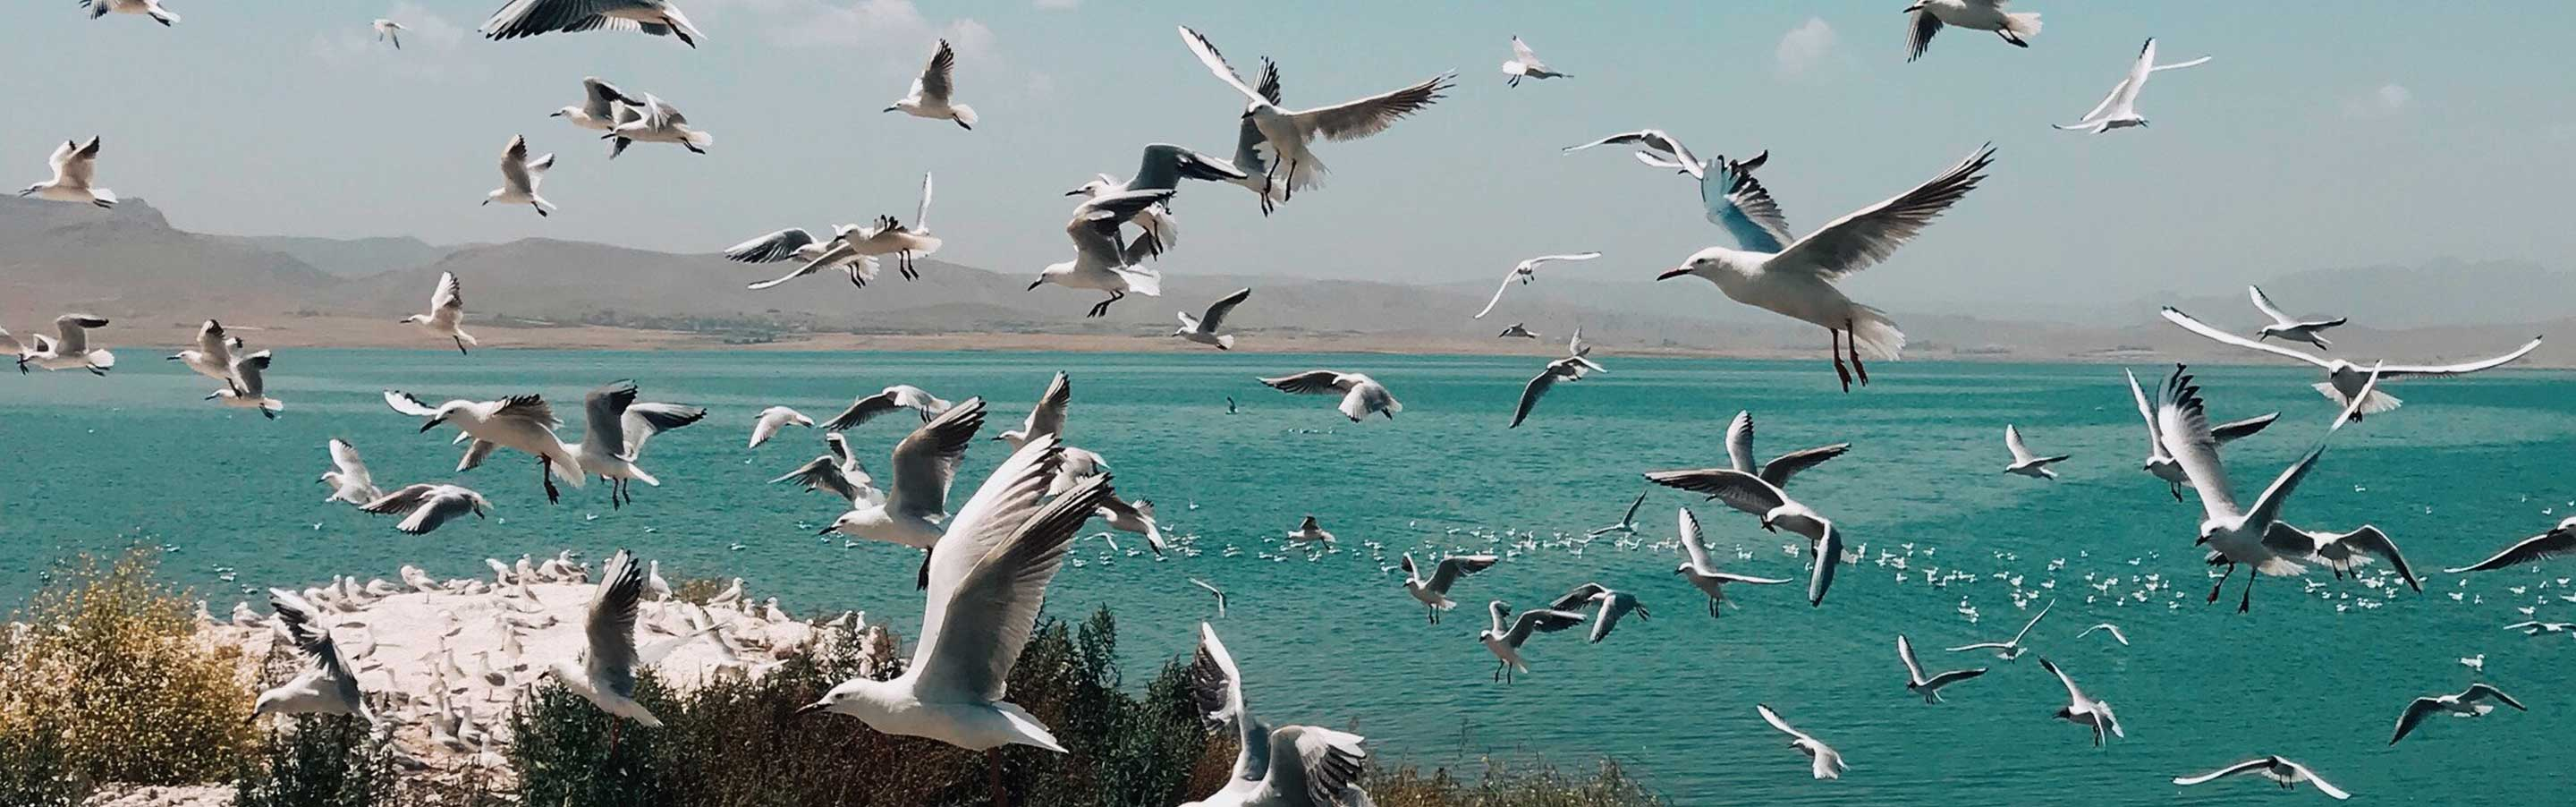 Seagulls fly at the beach